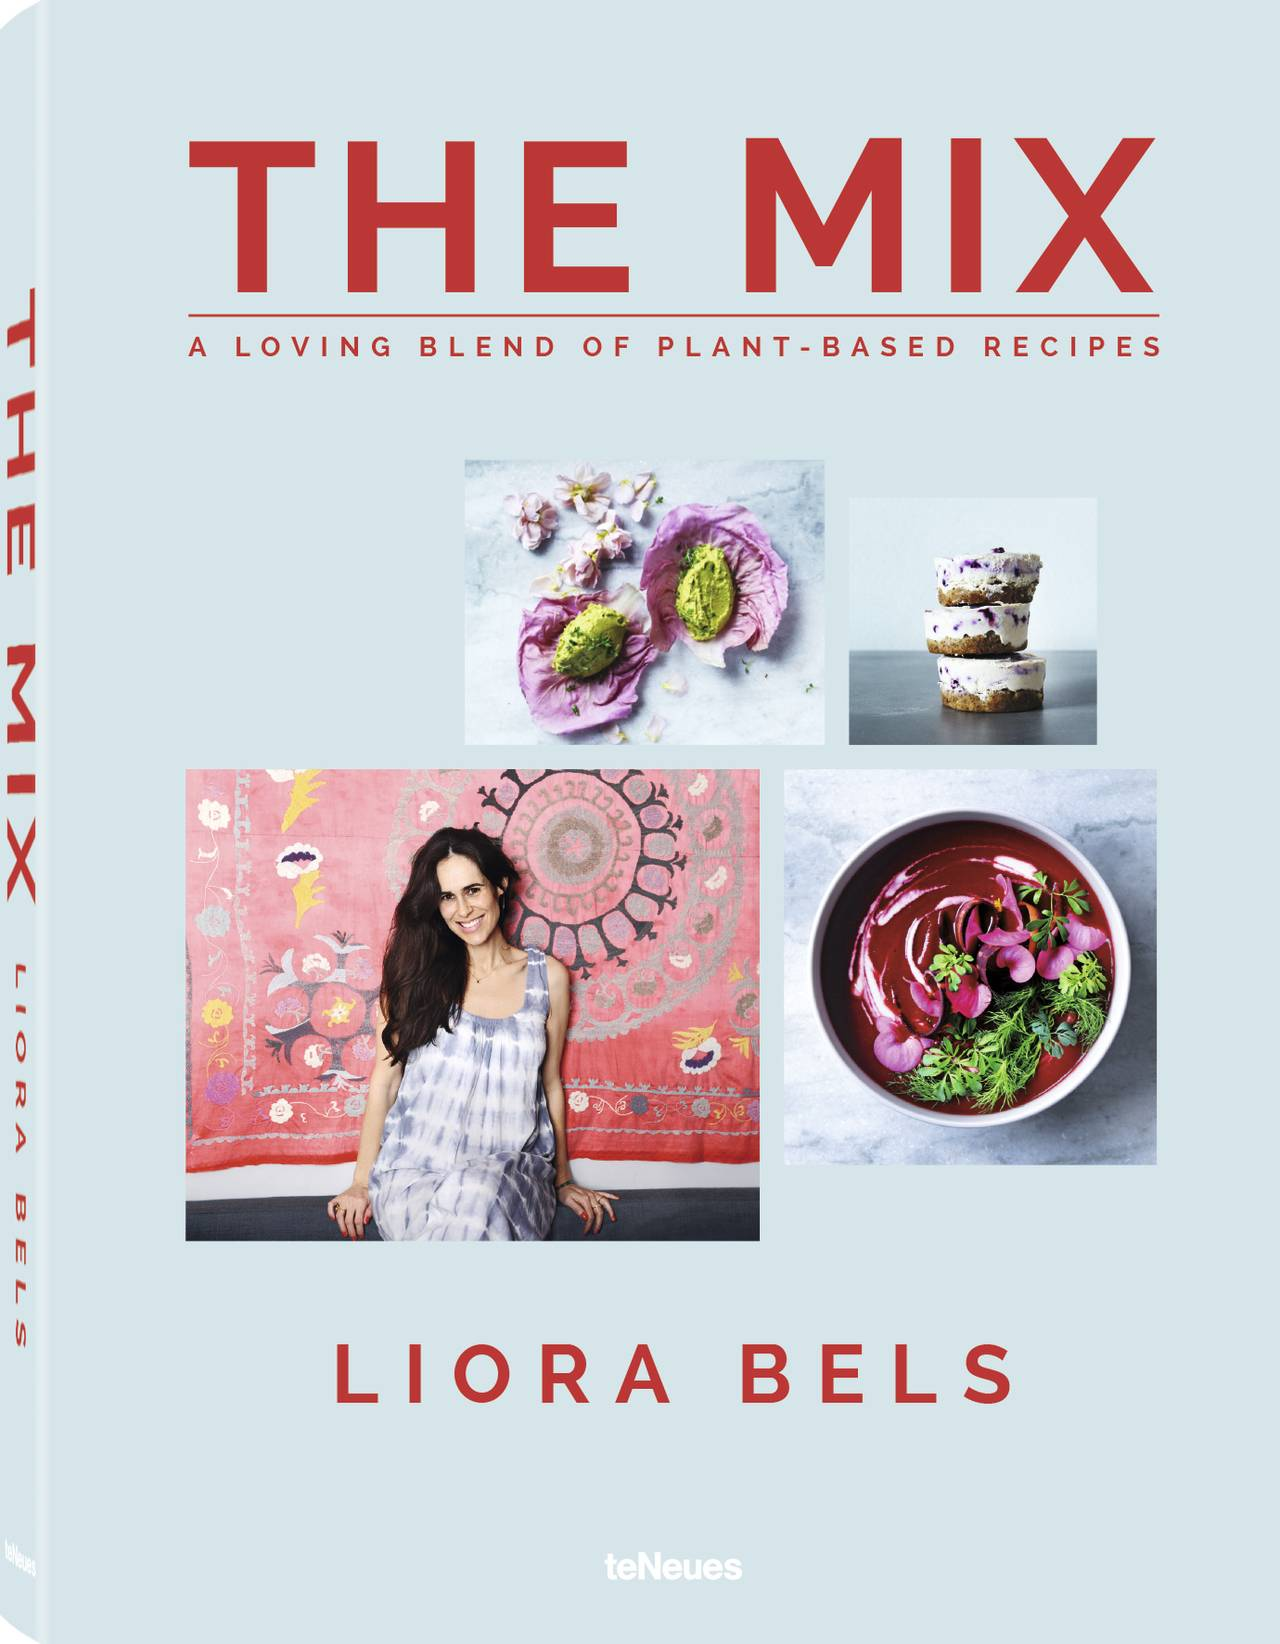 © The Mix - A loving blend of plant-based recipes by Liora Bels, published by teNeues, www.teneues.com, www.liorabels.com, Photos © 2016 Mirjam Knickriem. All rights reserved